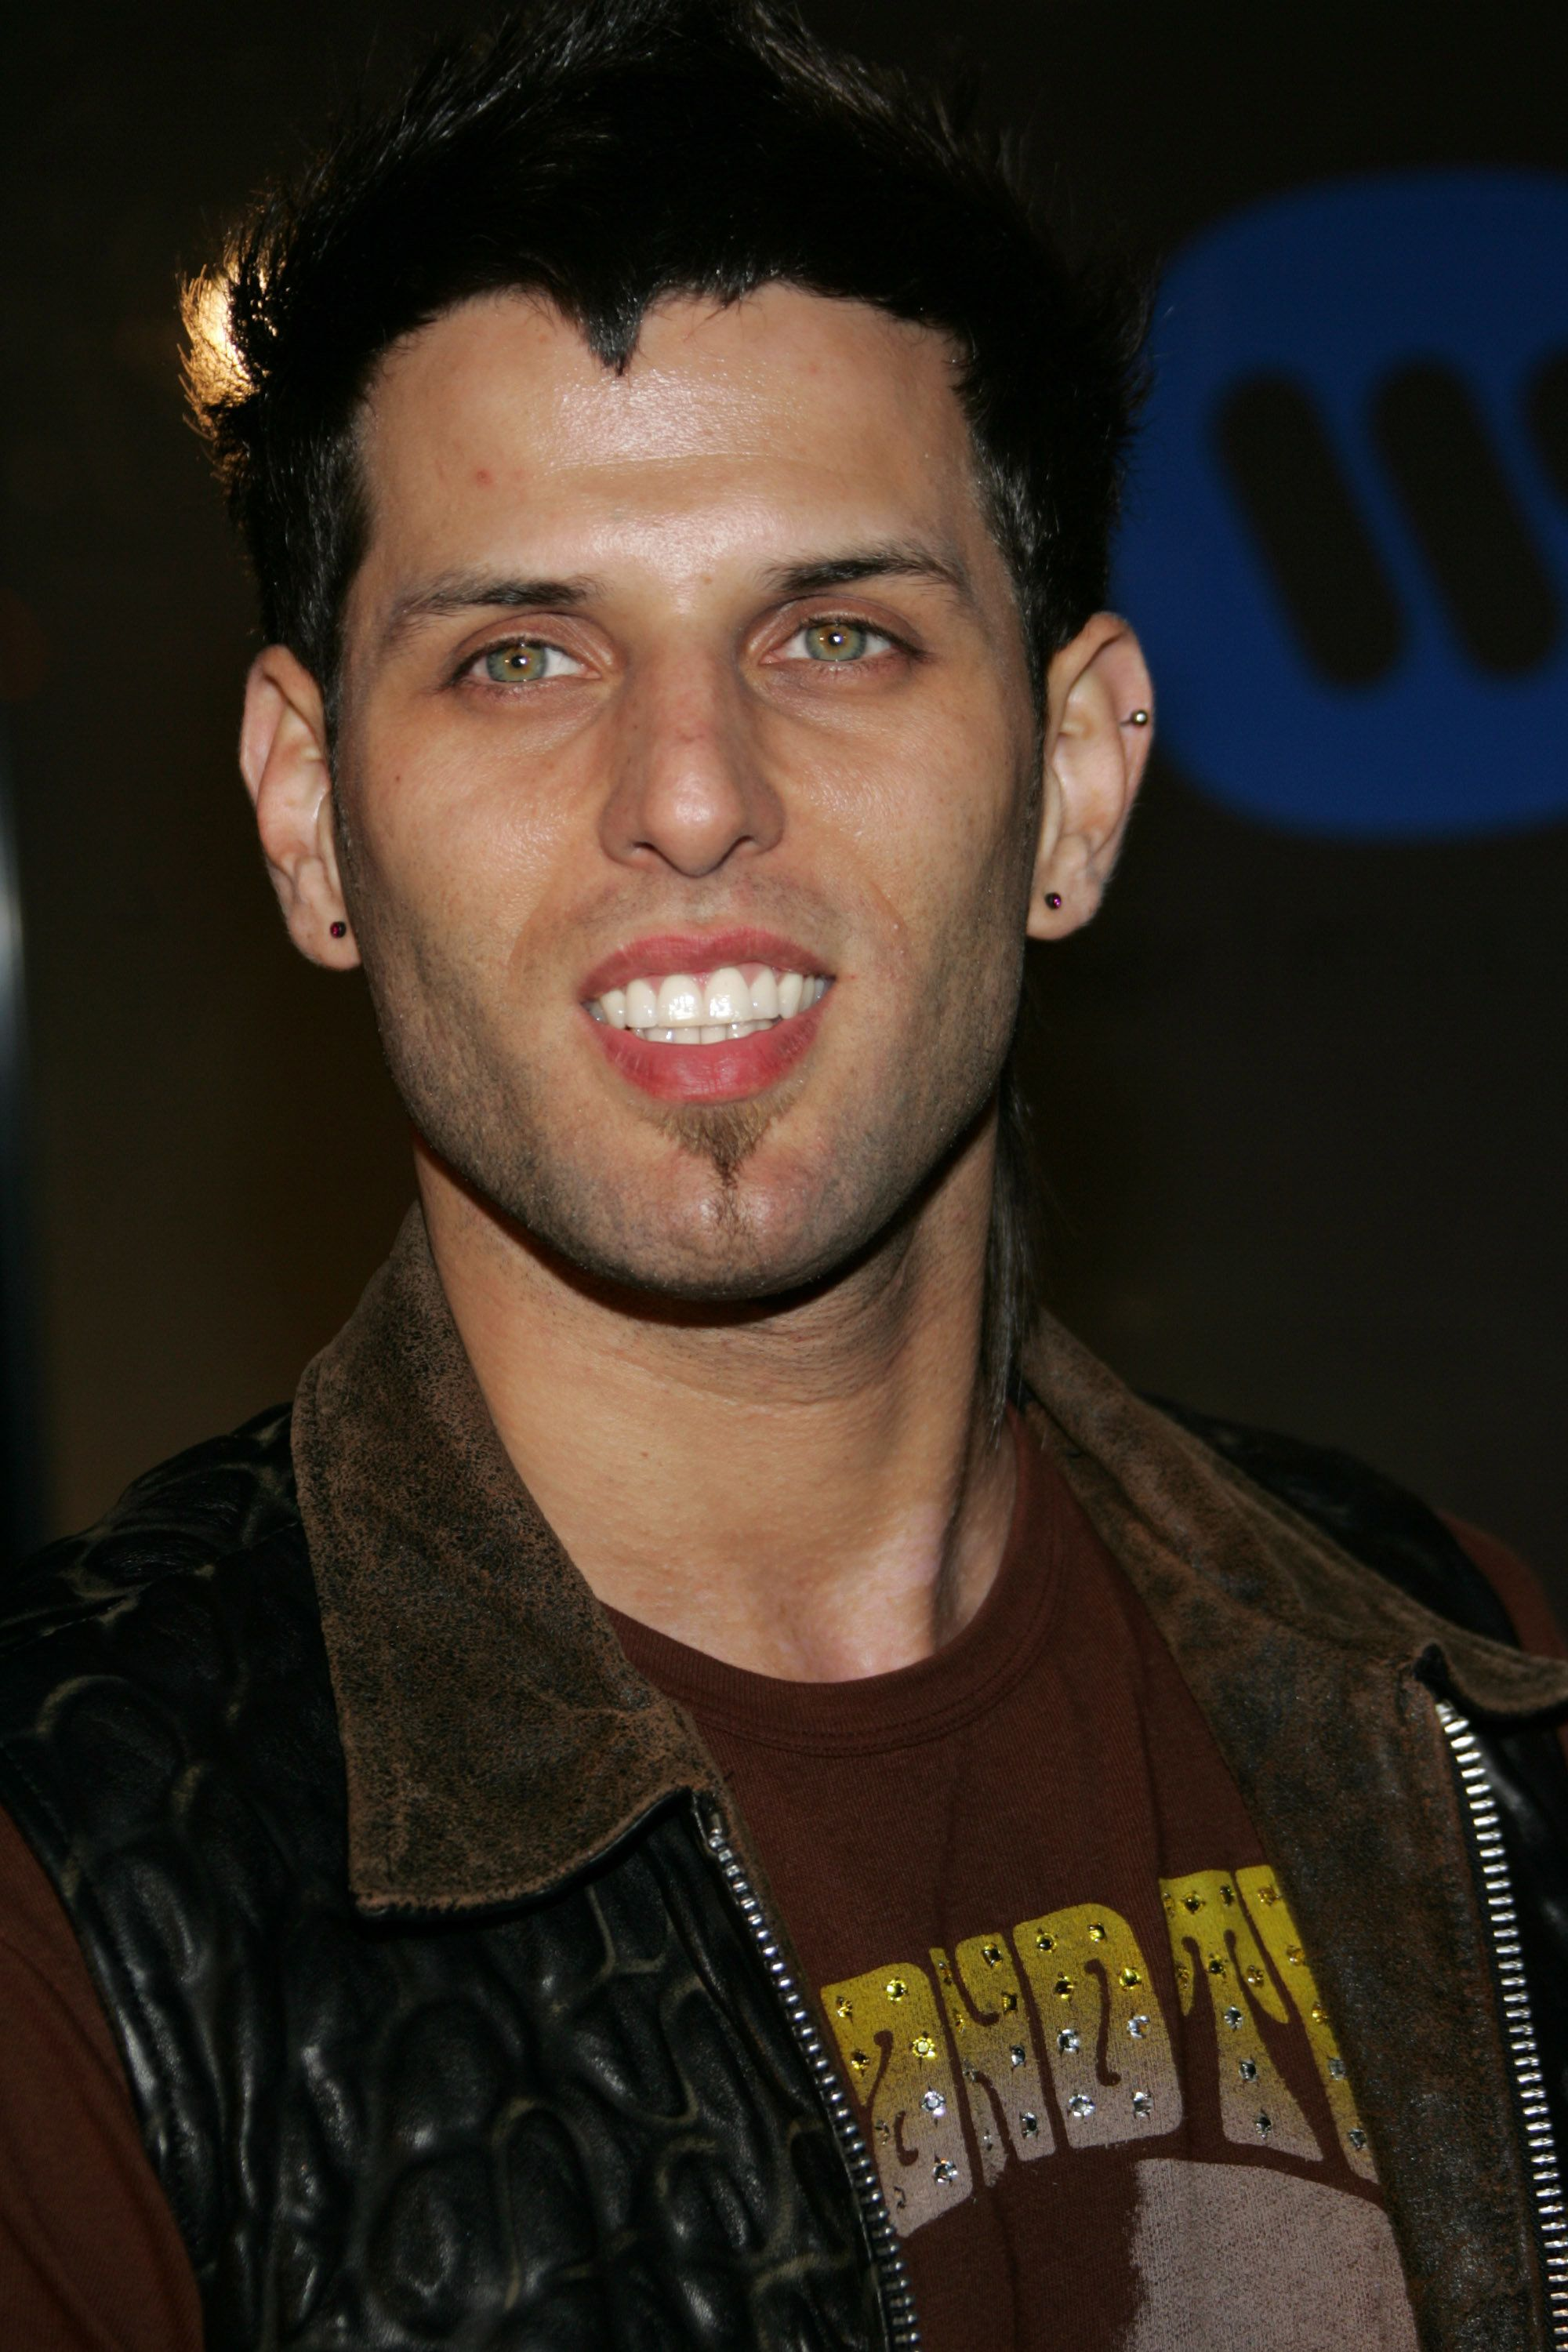 LFO singer Devin Lima has been diagnosed withstage 4 adrenal cancer, his band announcedon